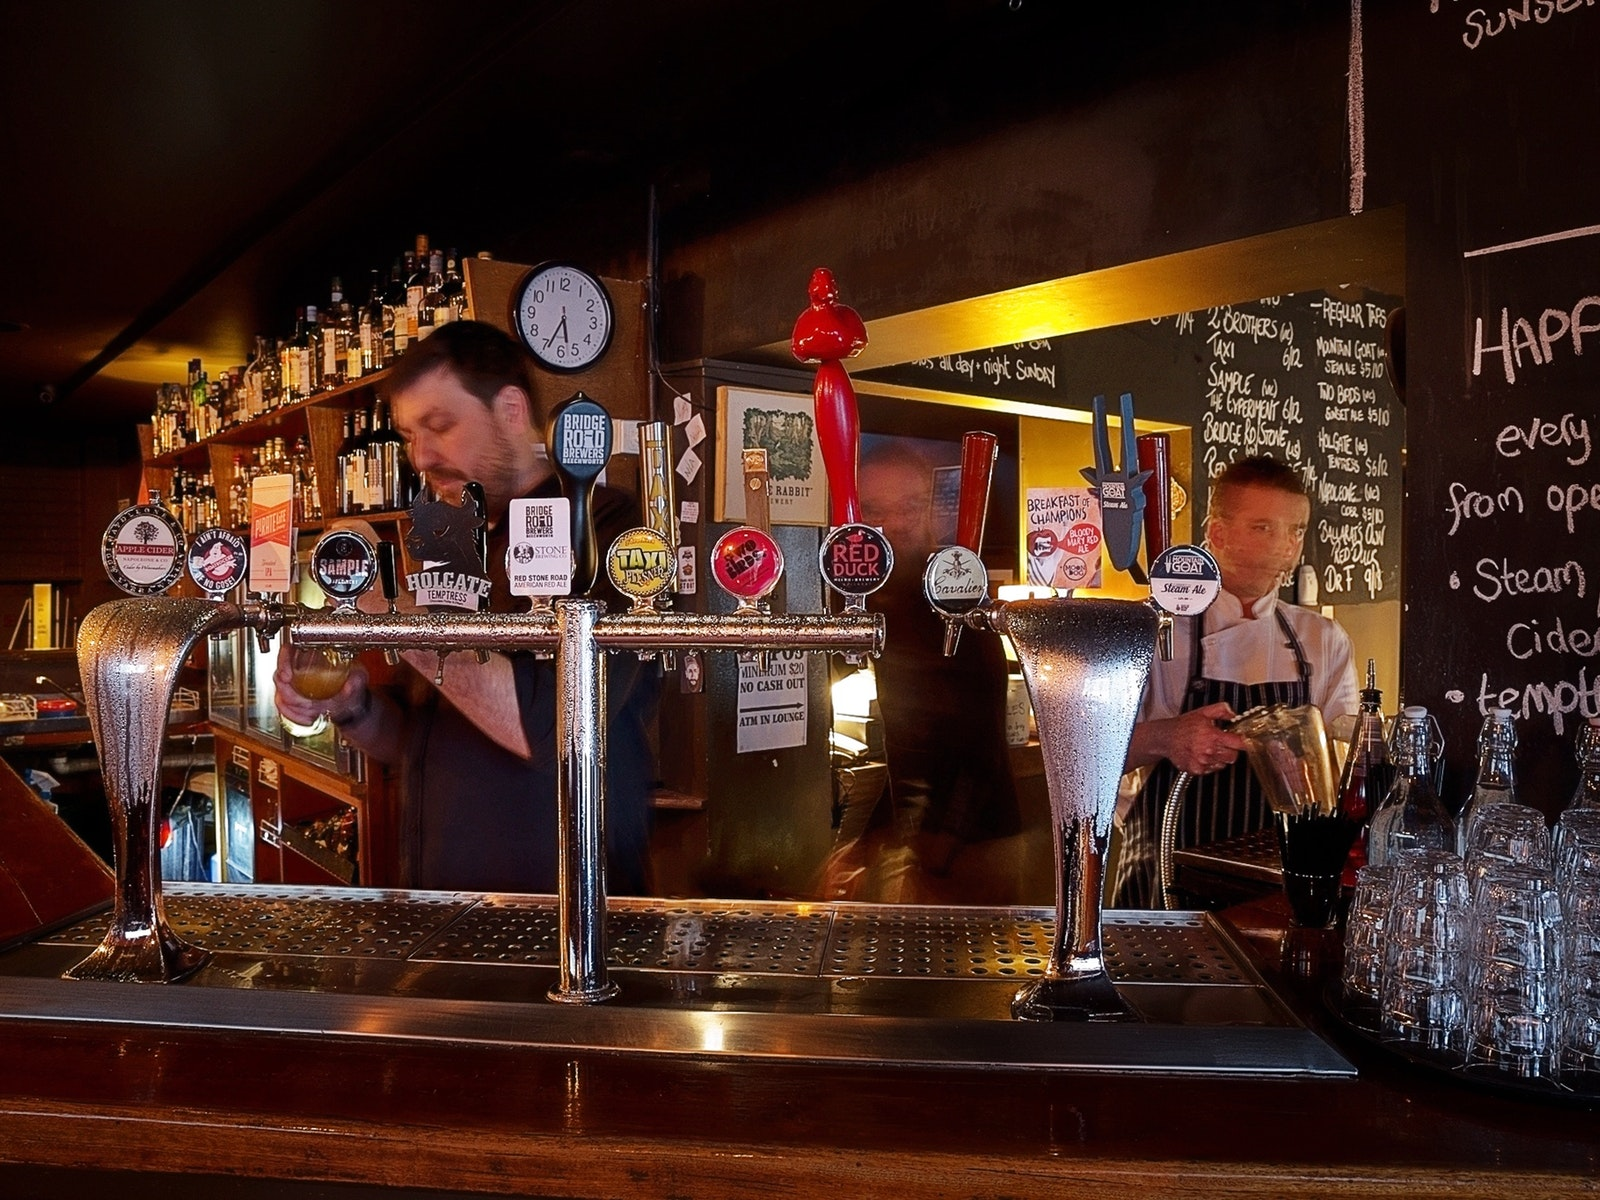 Craft beers on tap in the front bar